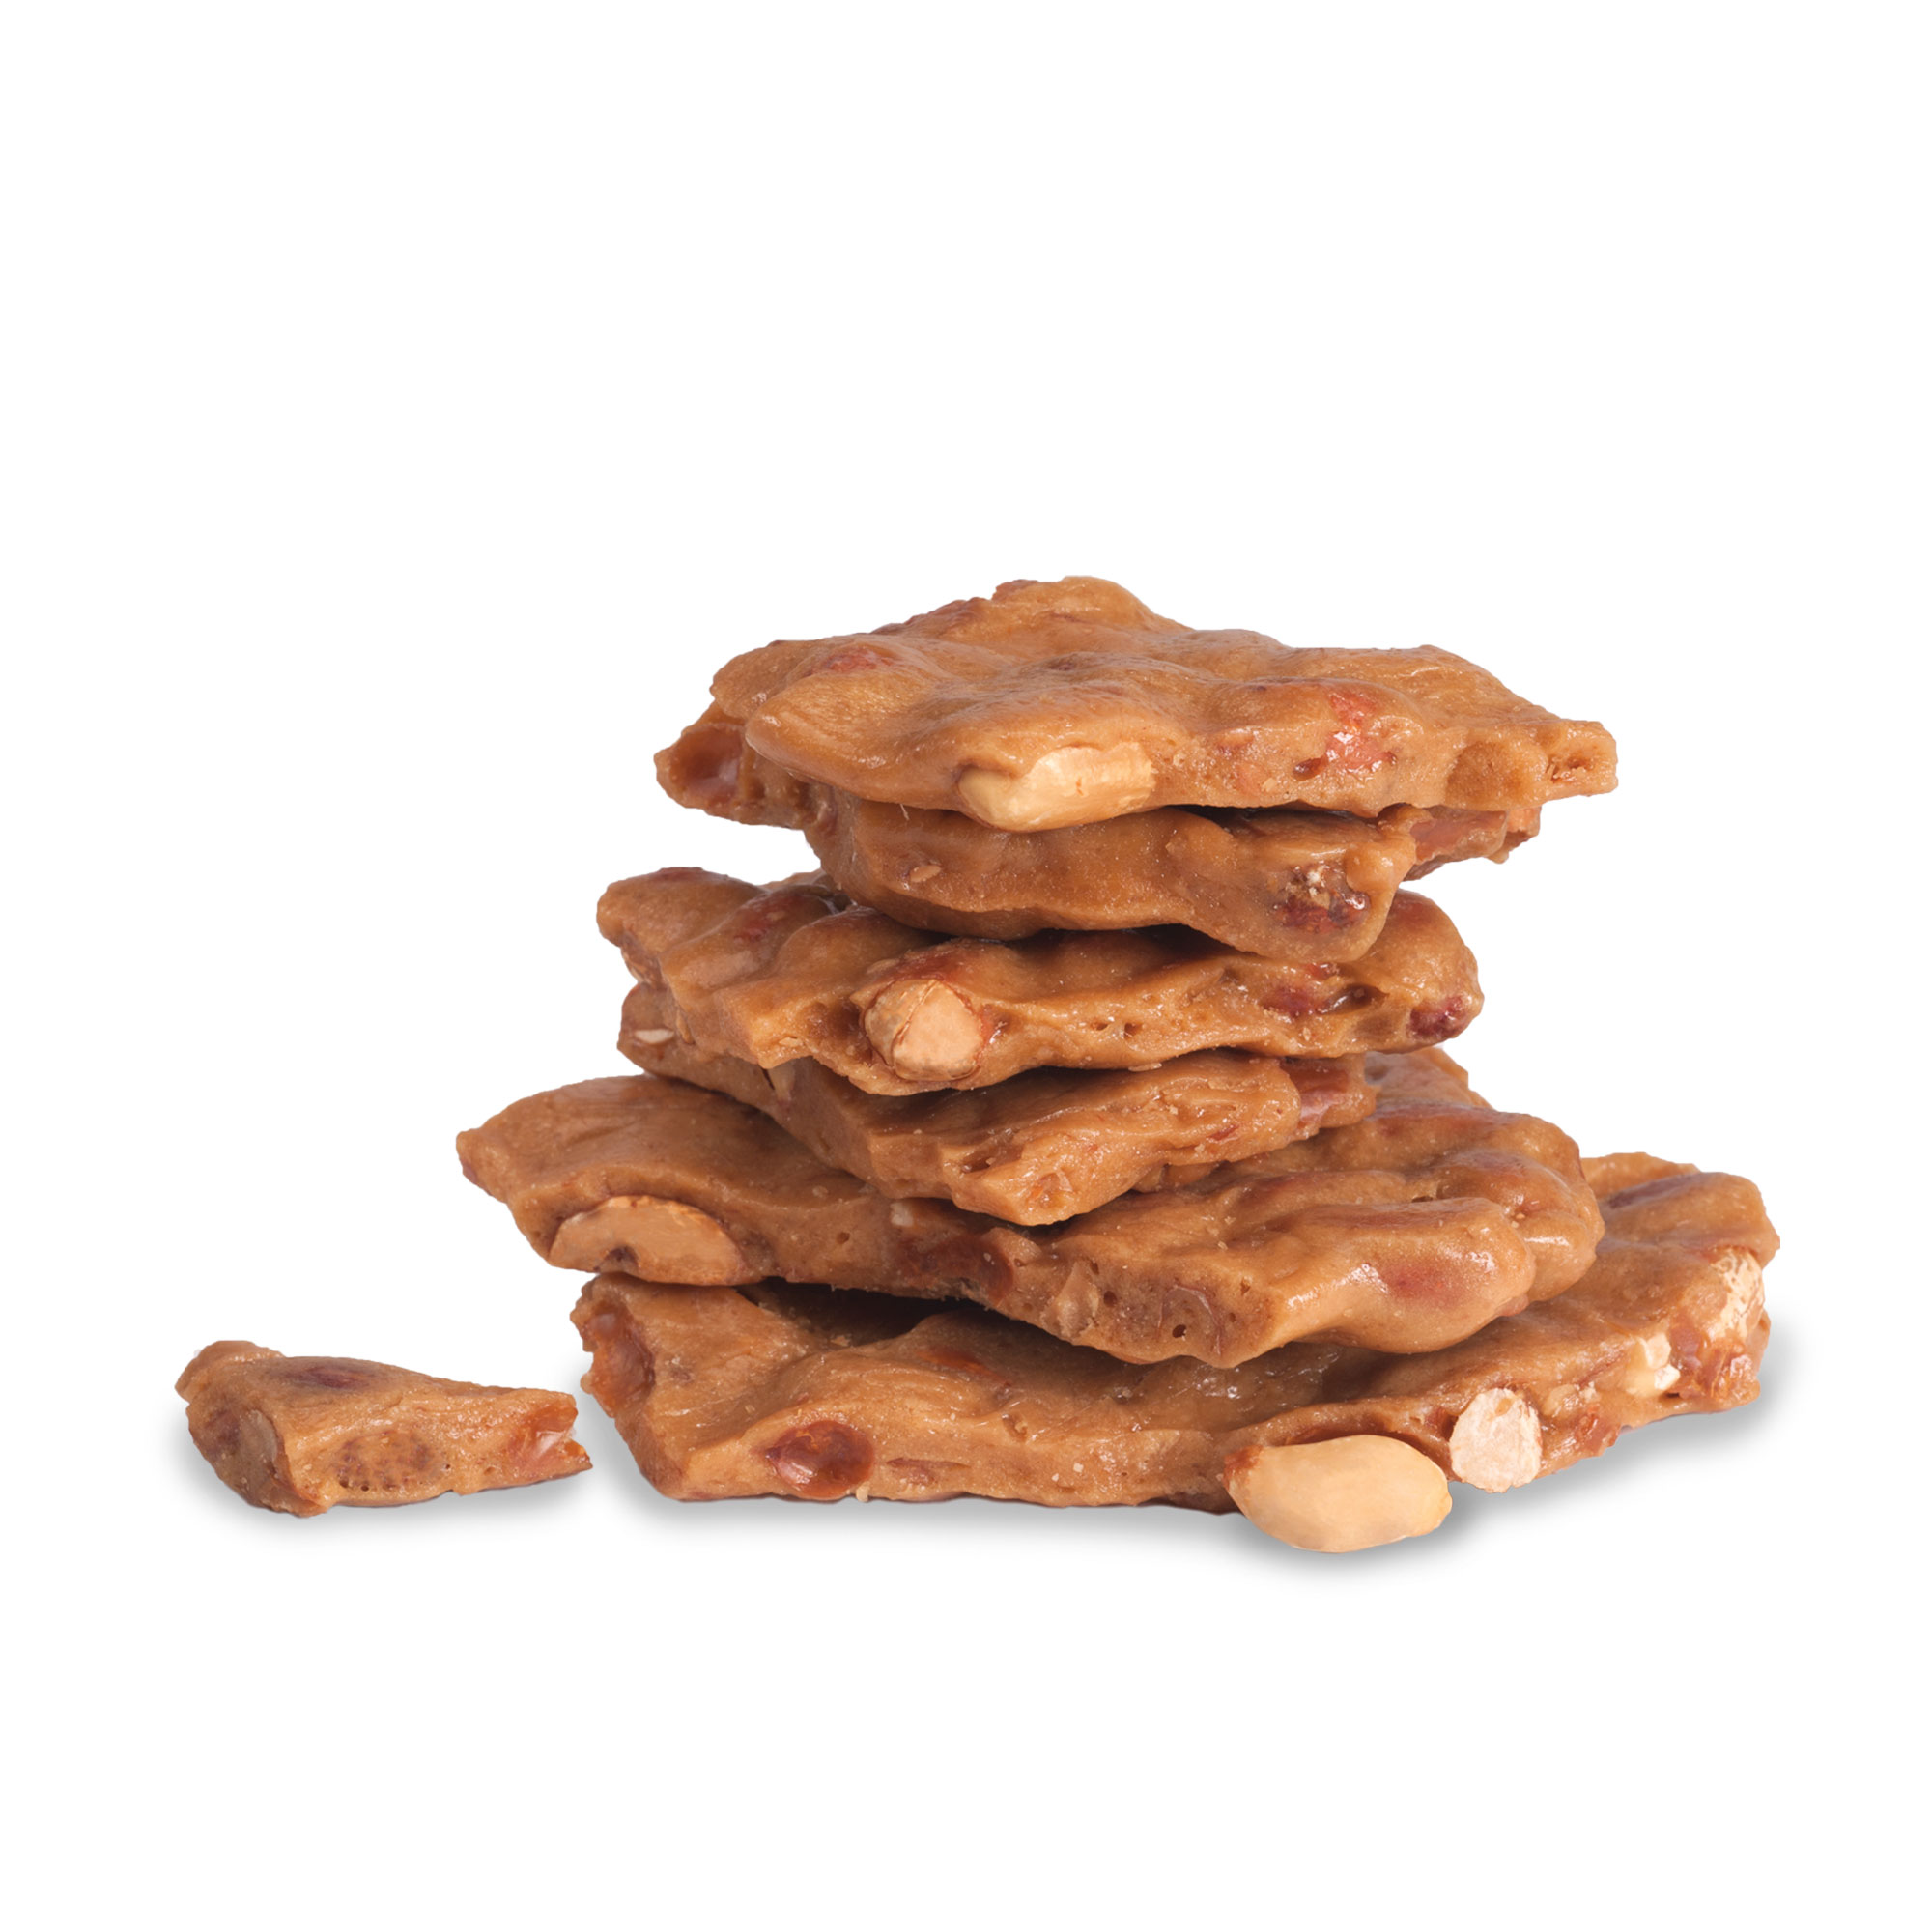 View of Peanut Brittle 2